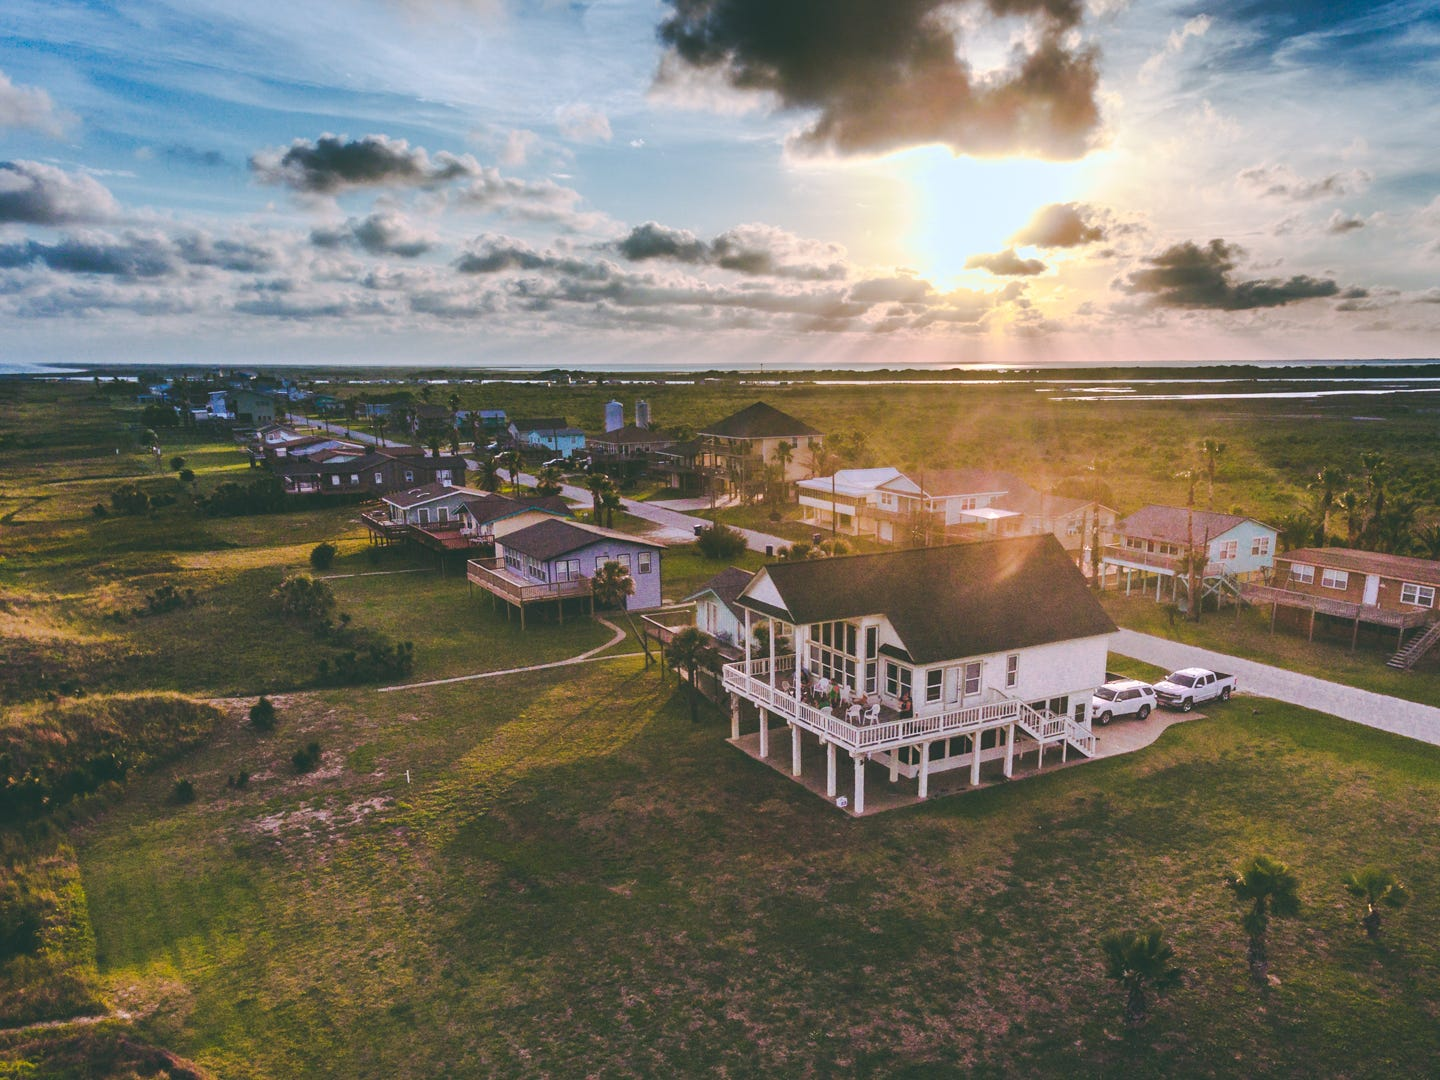 Texas: Whether you want to be super active or just lay low, you can do that at Matagorda, located on the Texas Gulf Coast. Spend the day bird watching or fishing, or building sand castles and listening to the waves roll in. History buffs can explore the many local historic sites, shopping enthusiasts can go on a shopping excursion in town, and nature lovers can explore the wildlife areas at the Matagorda Bay Nature Center. No matter what your activity (or non-activity) of choice is, make sure you eat a fresh seafood dinner at some point during your stay.  When you're planning your stay here, avoid booking through a 1-800 number. Experts say that's one of the best ways to save money on your vacation. Matagorda Bay Nature Park: $5